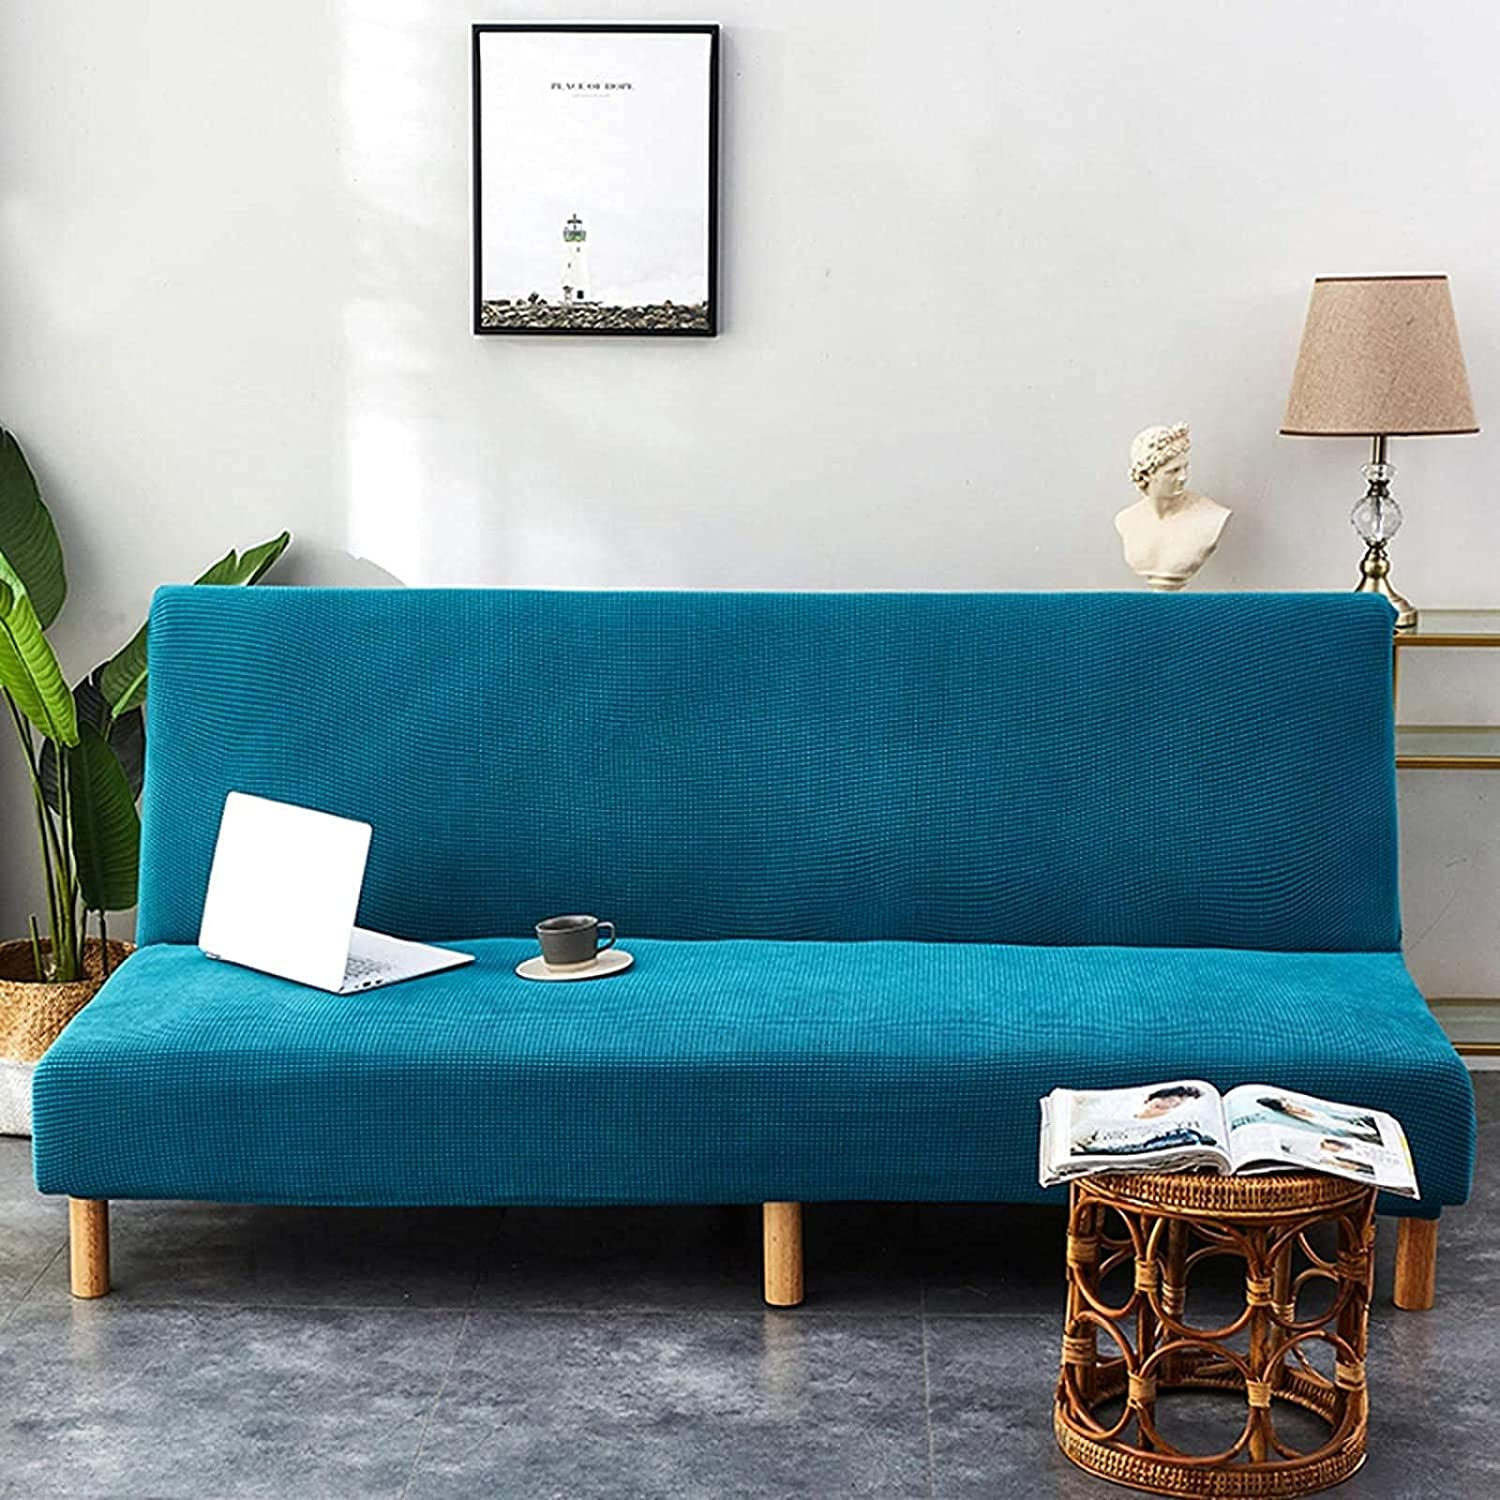 Year-end gift JYHS Folding Sofa Bed Cover Slipcover Stretch Shipping included Armless Anti-